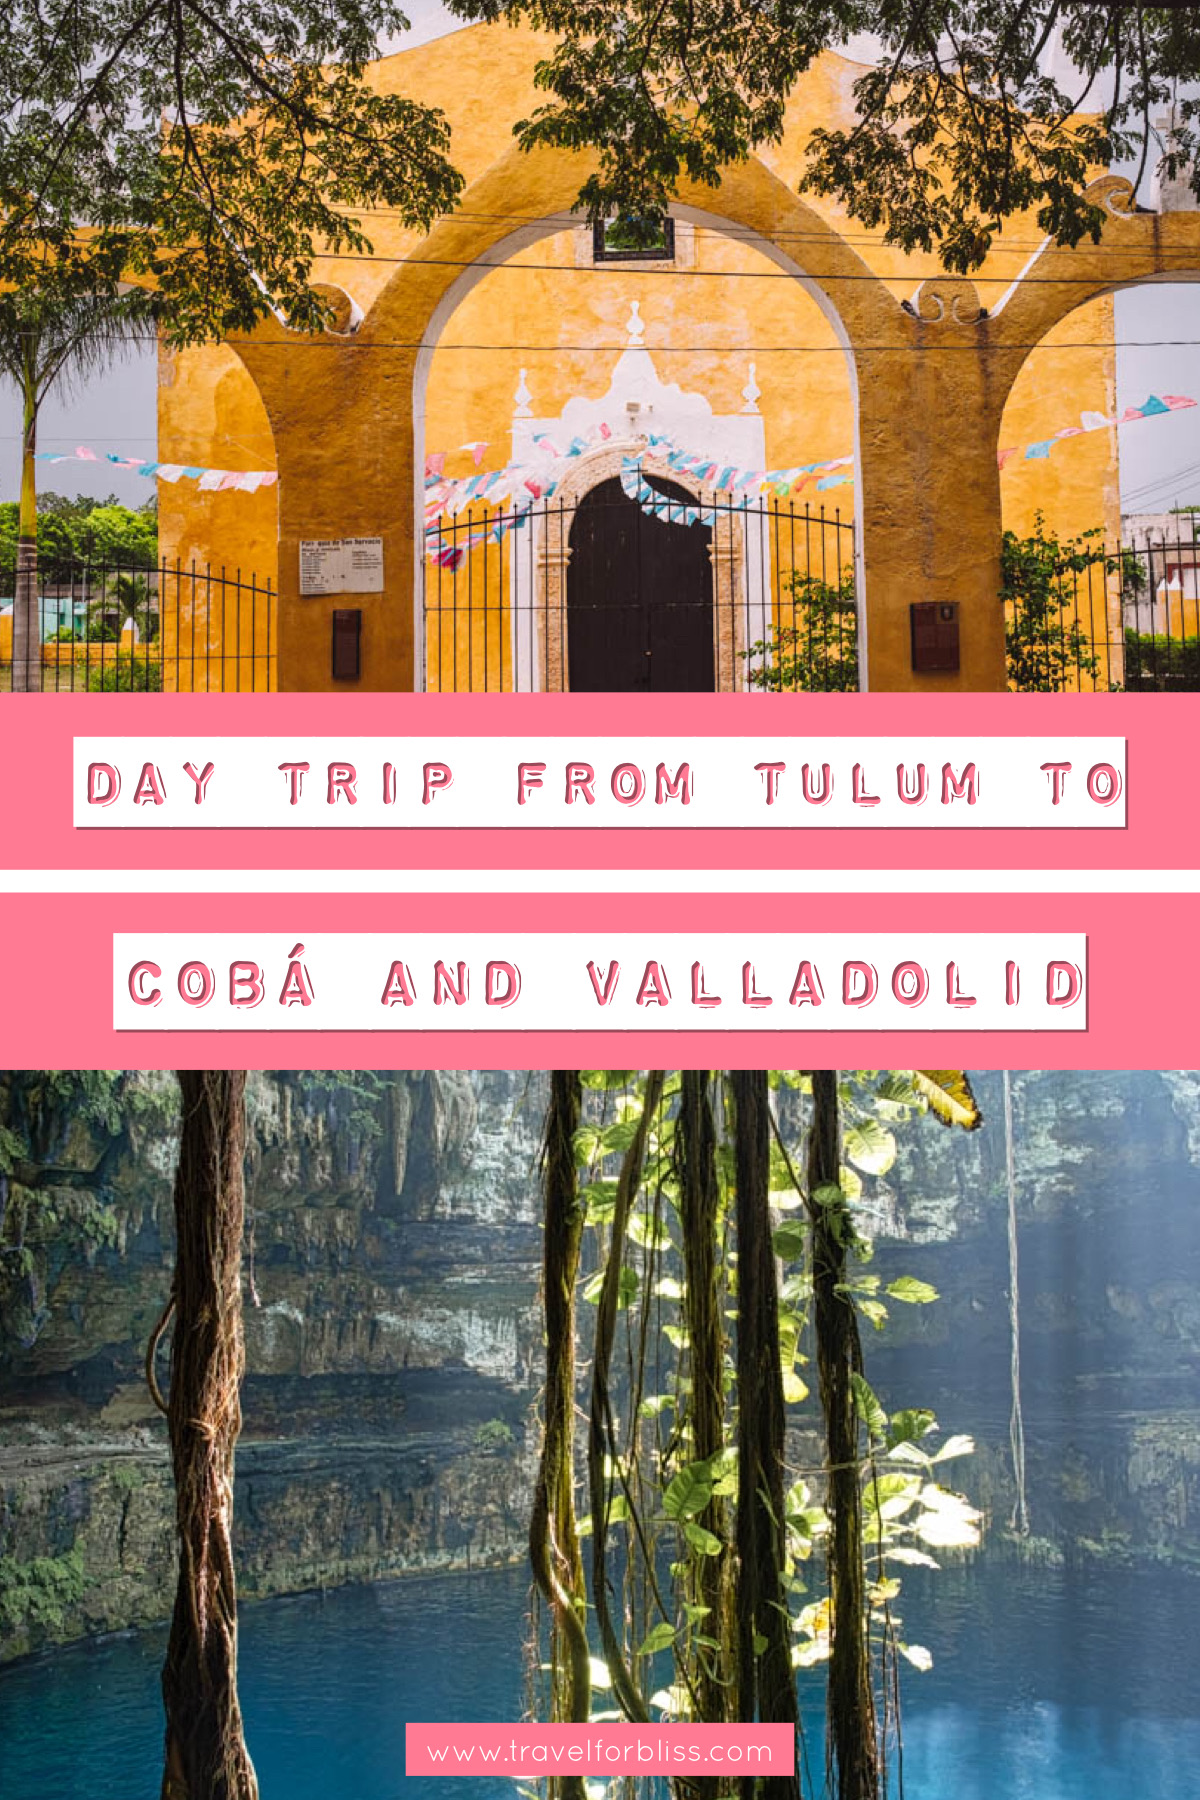 Find out the best day trip from Tulum to Coba and Valladolid. Discover some of the best cenotes on the Yucatan Peninsular. Explore the amazing Mayan ruins of coba and the colourful streets of Valladolid.